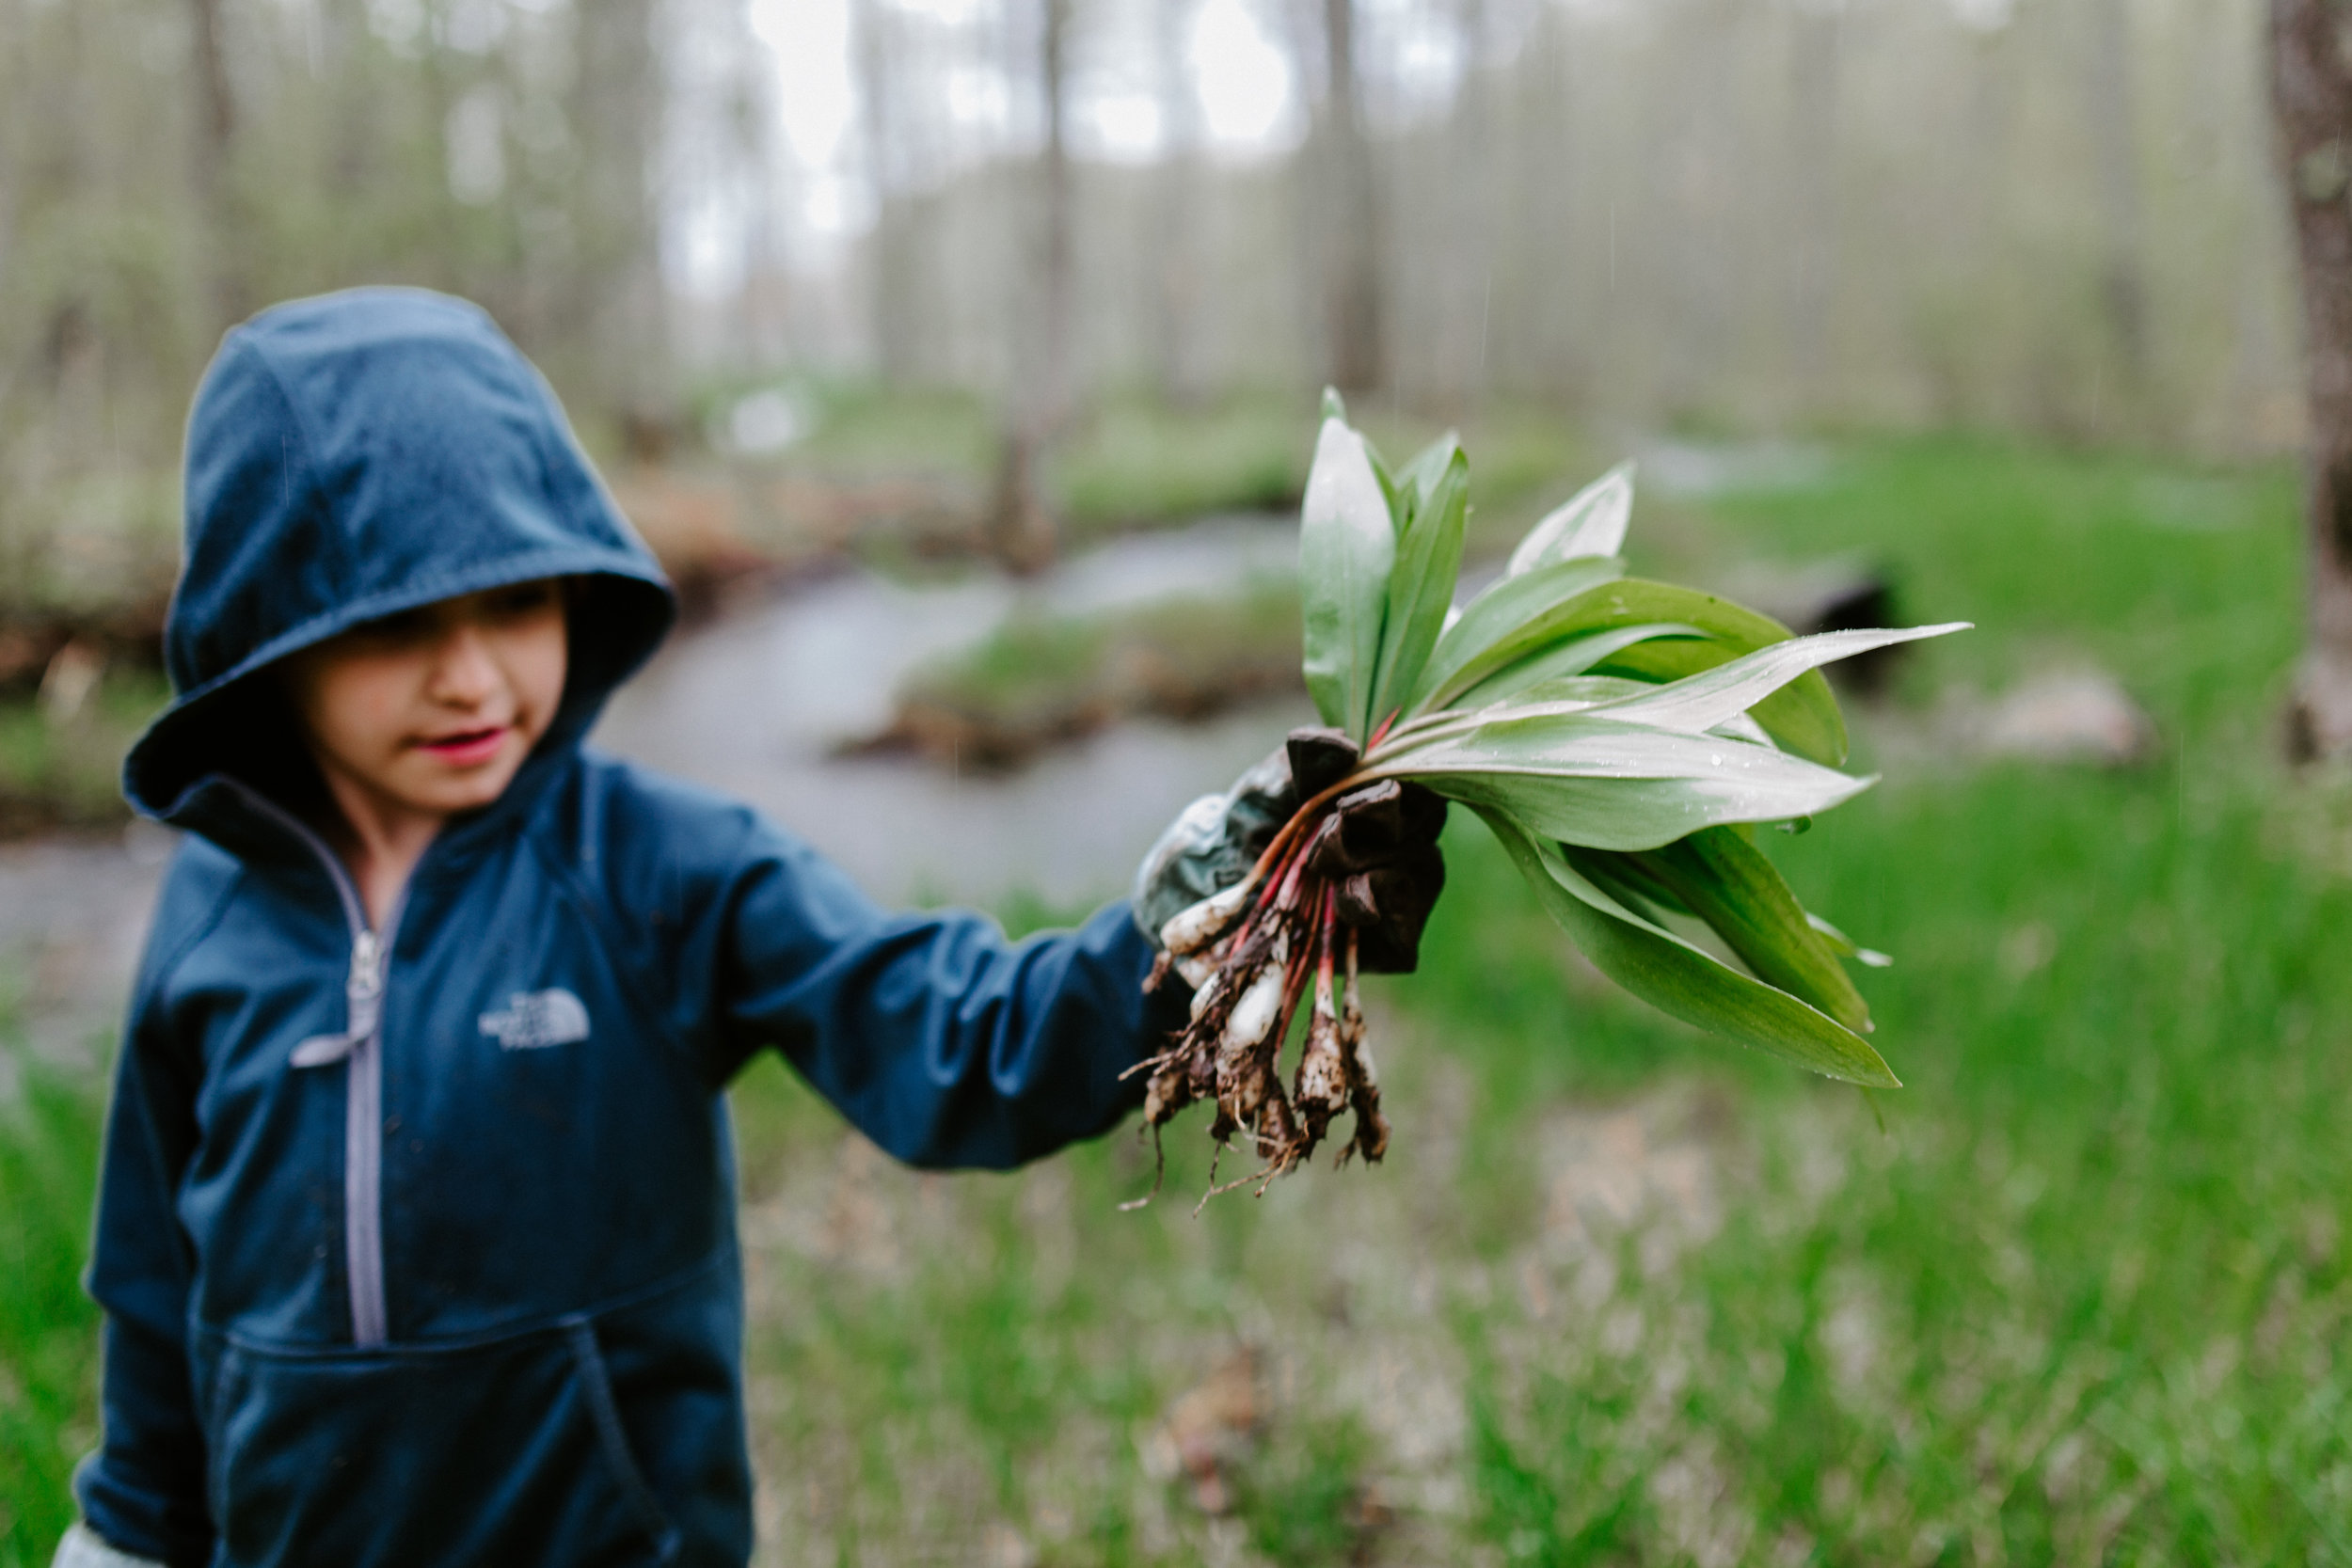 Harvesting wild leeks, otherwise known as ramps.